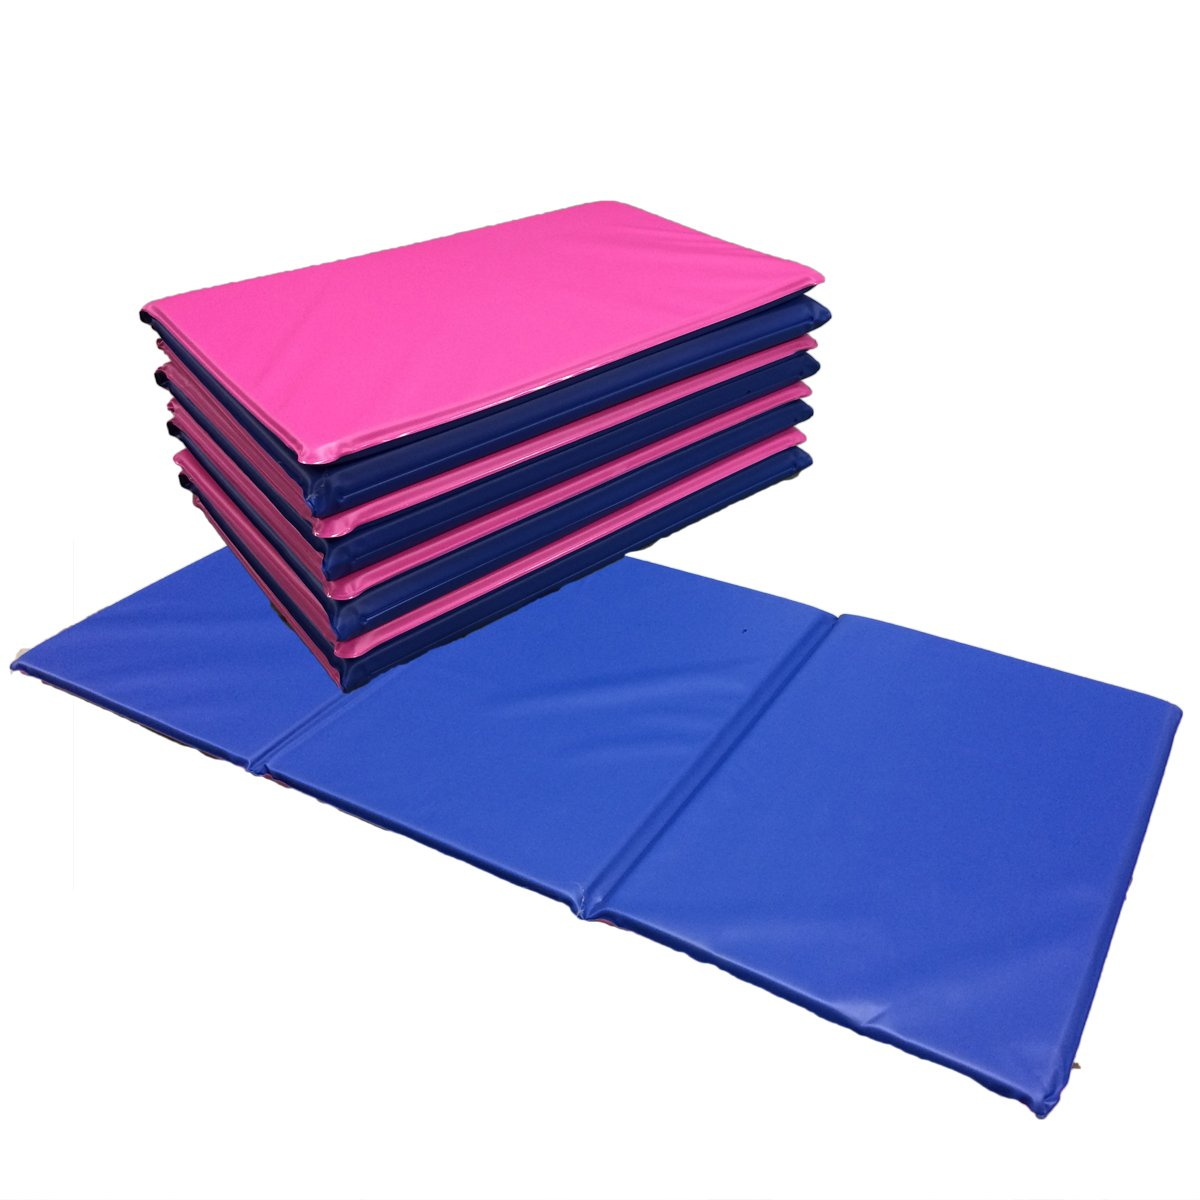 NEW 5x Triple Folding Nursery Sleep Mats in Pink / Blue for Children & Toddlers Active Learning 681